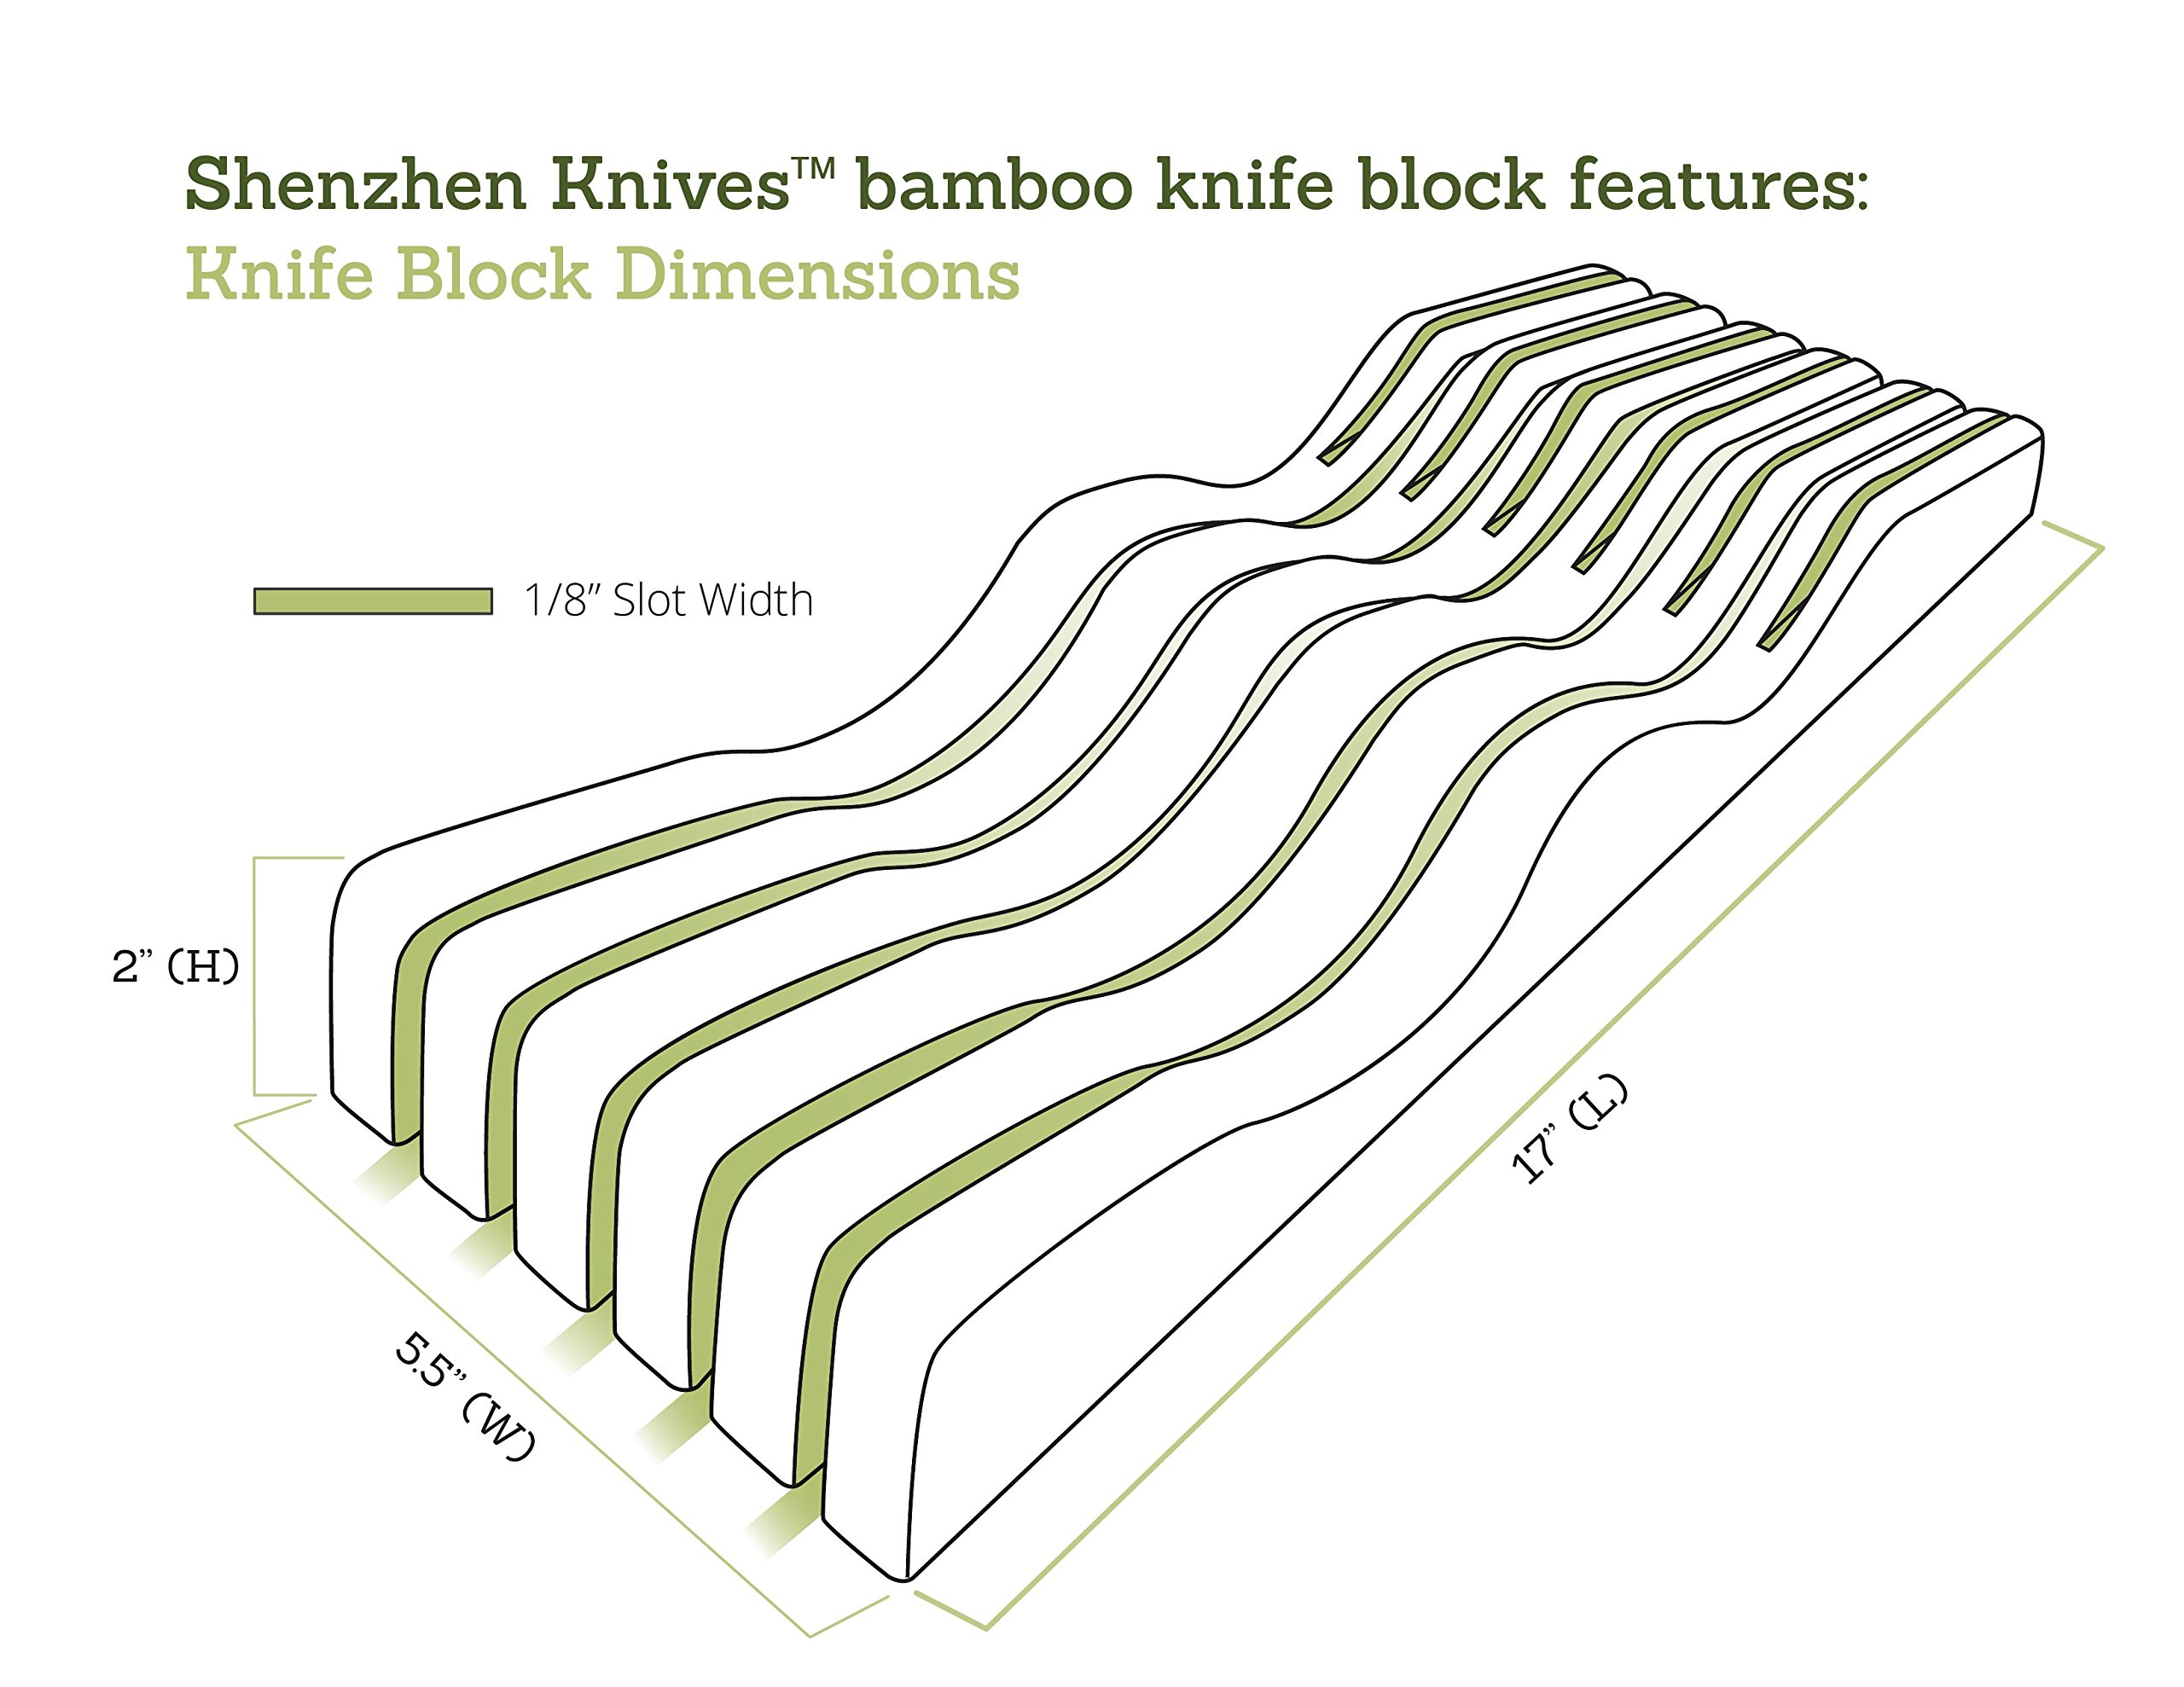 In-Drawer Bamboo Knife Block without Knives. Knife Storage and Organizer holds 10-15 knives by Shenzhen Knives by Shenzhen Knives (Image #4)